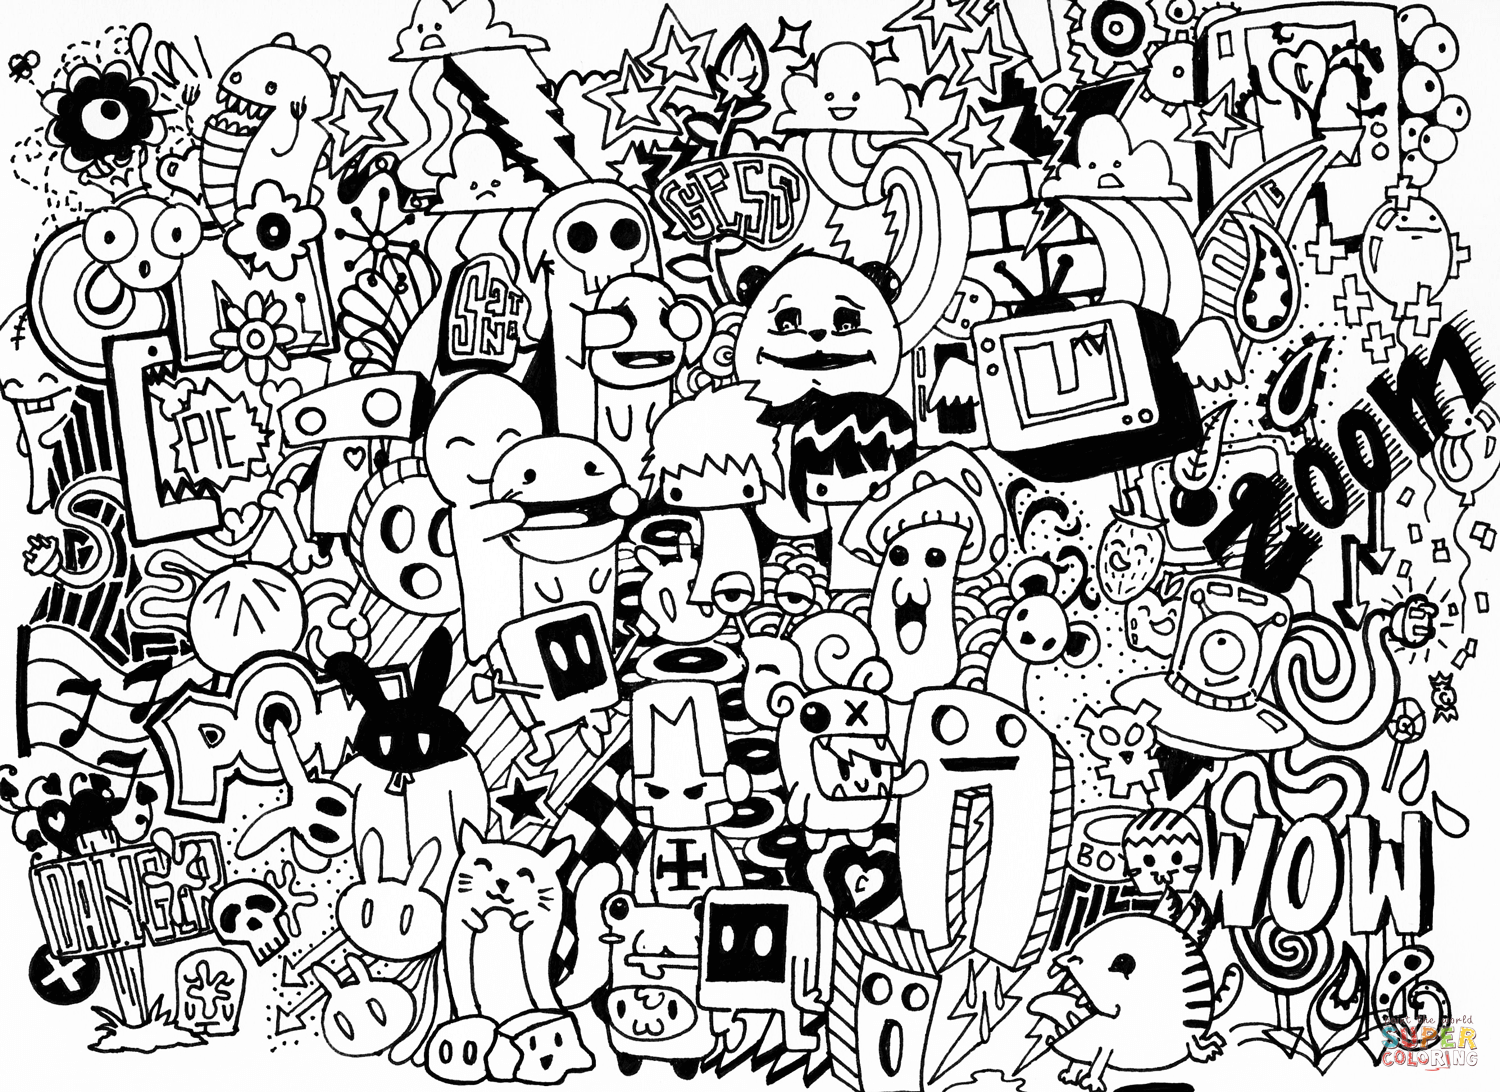 1500x1092 Doodle Art Coloring Pages Free Coloring Pages Doodled